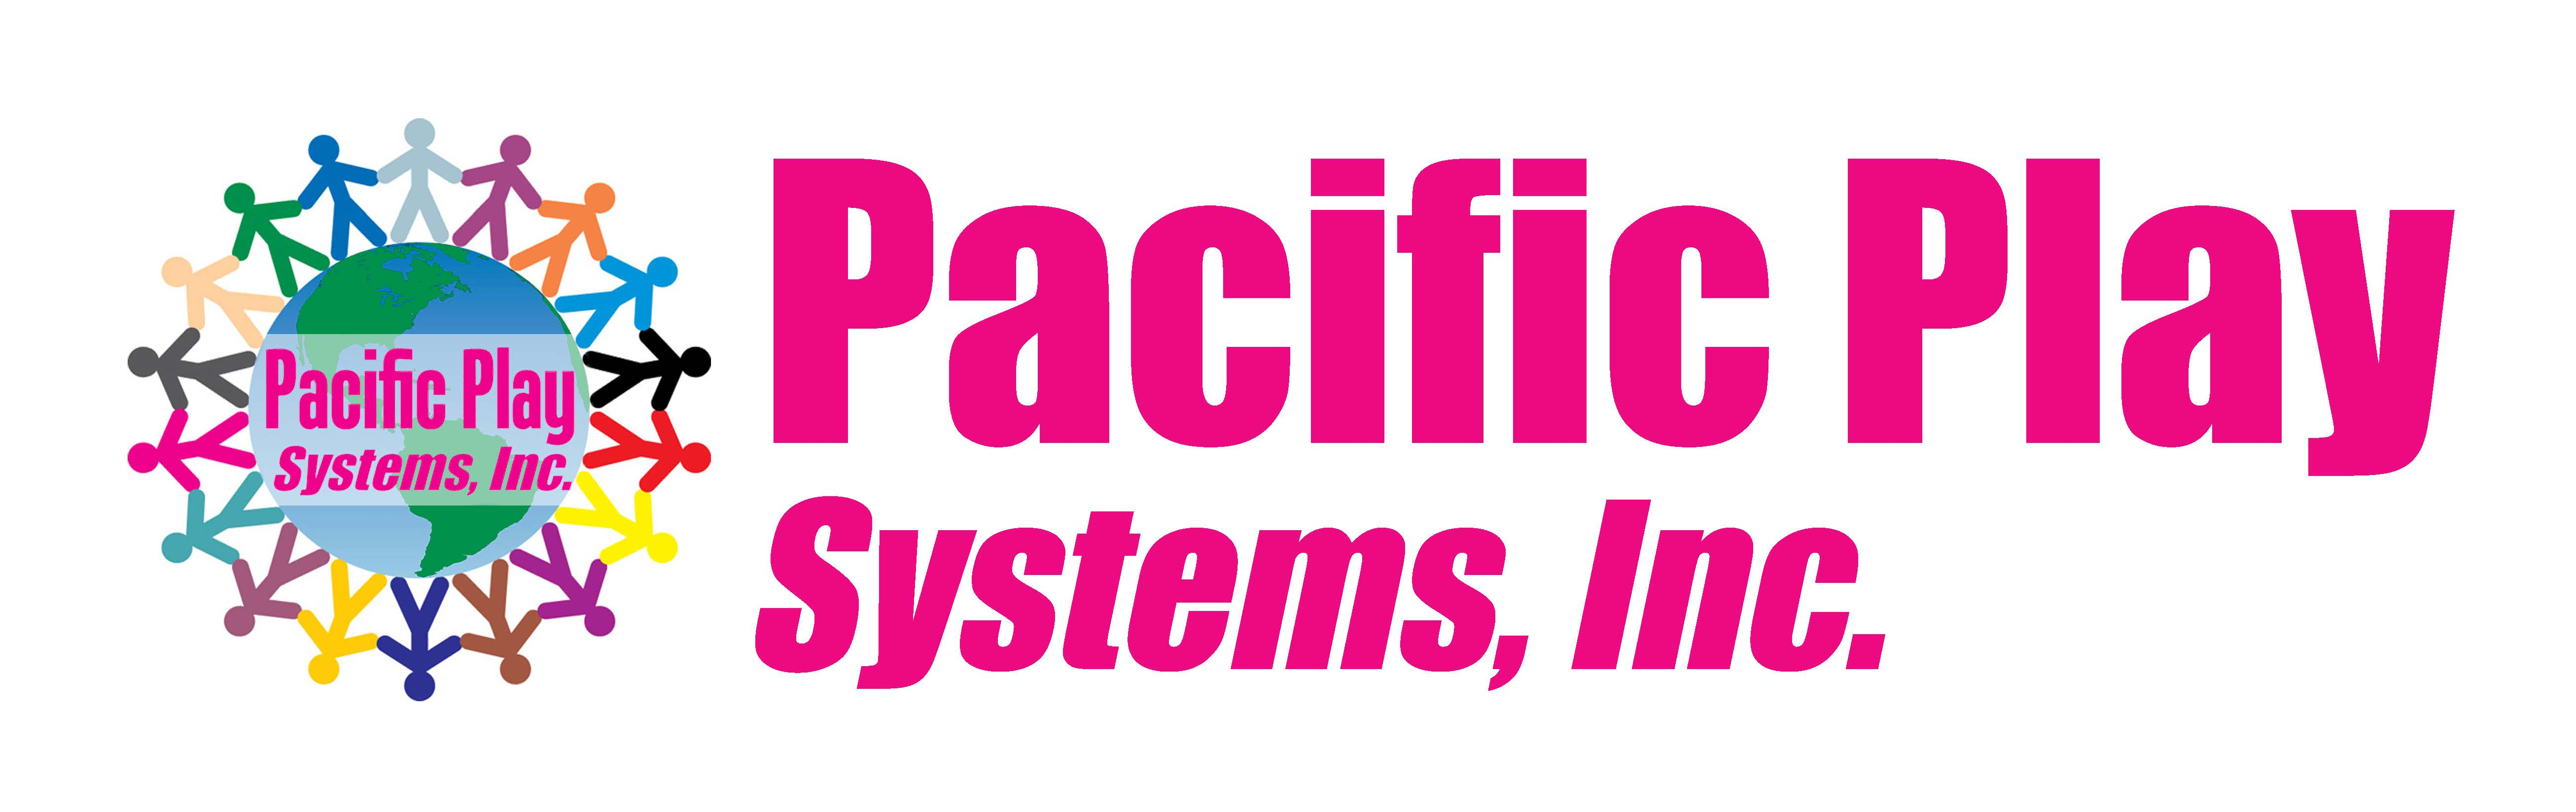 Logo Image for Pacific Play